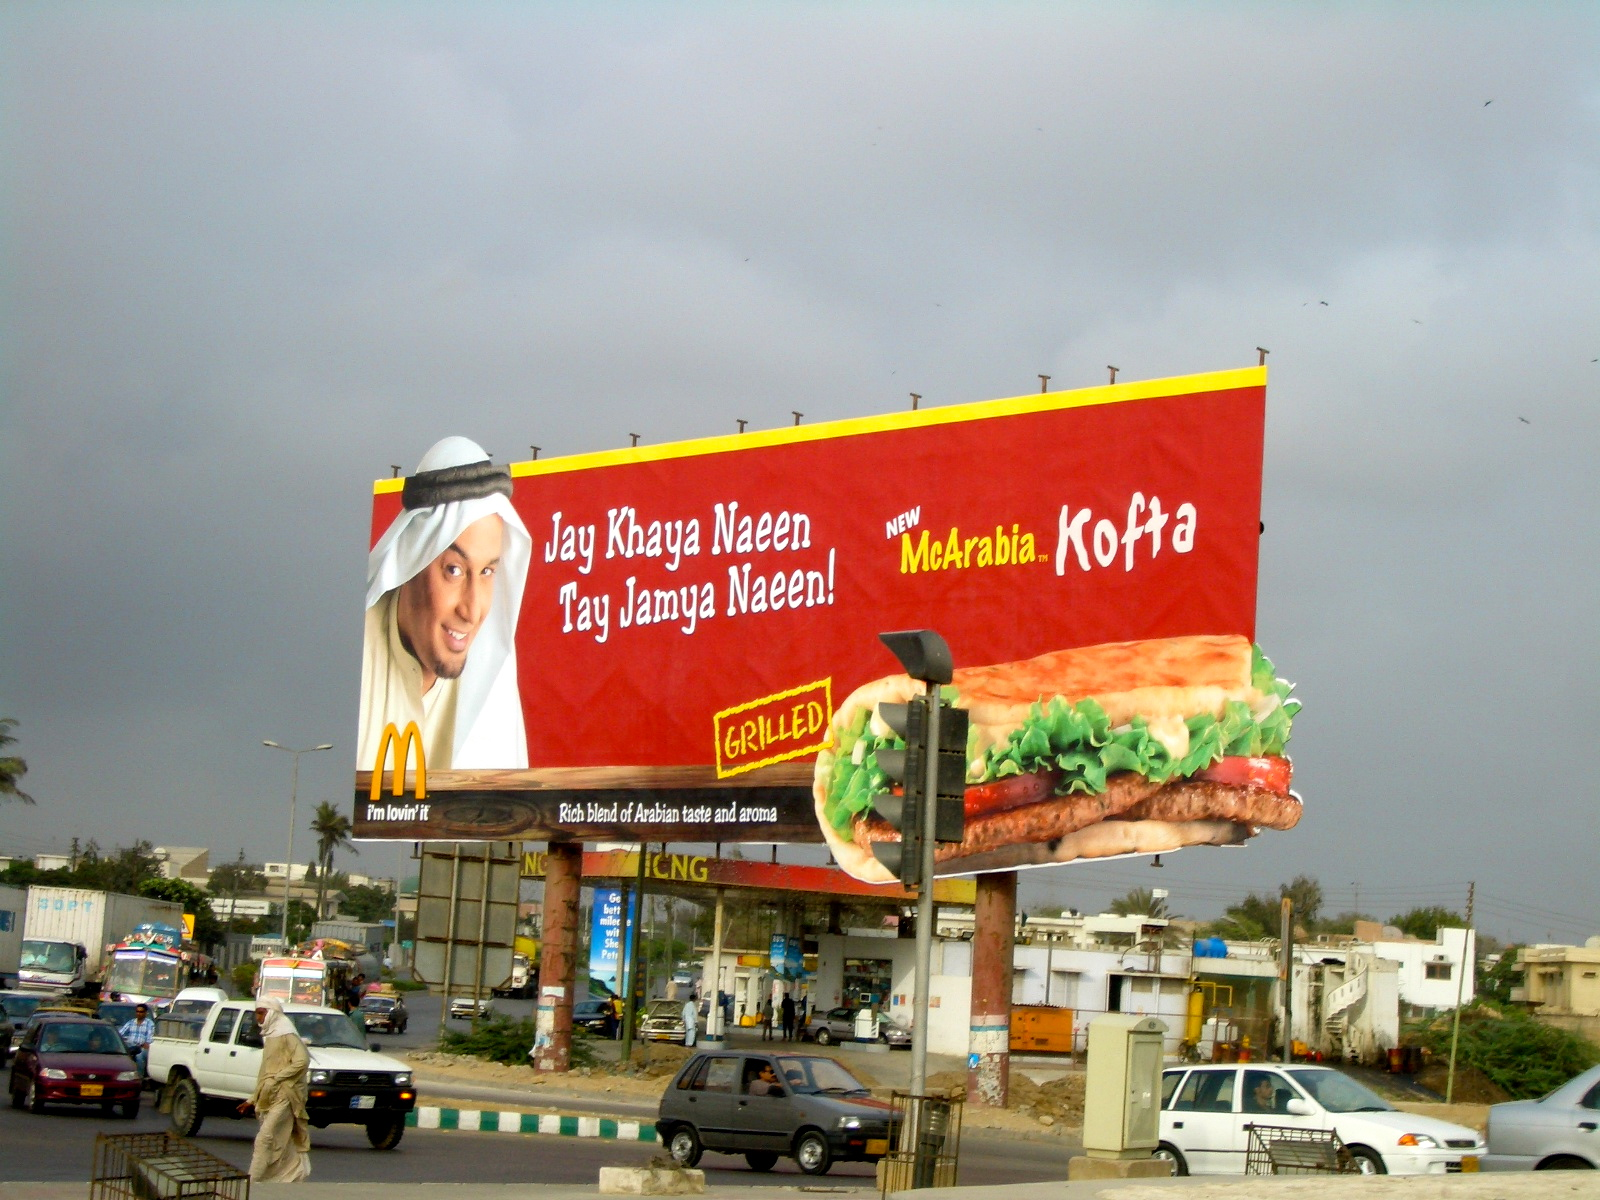 McDonald's Billboard